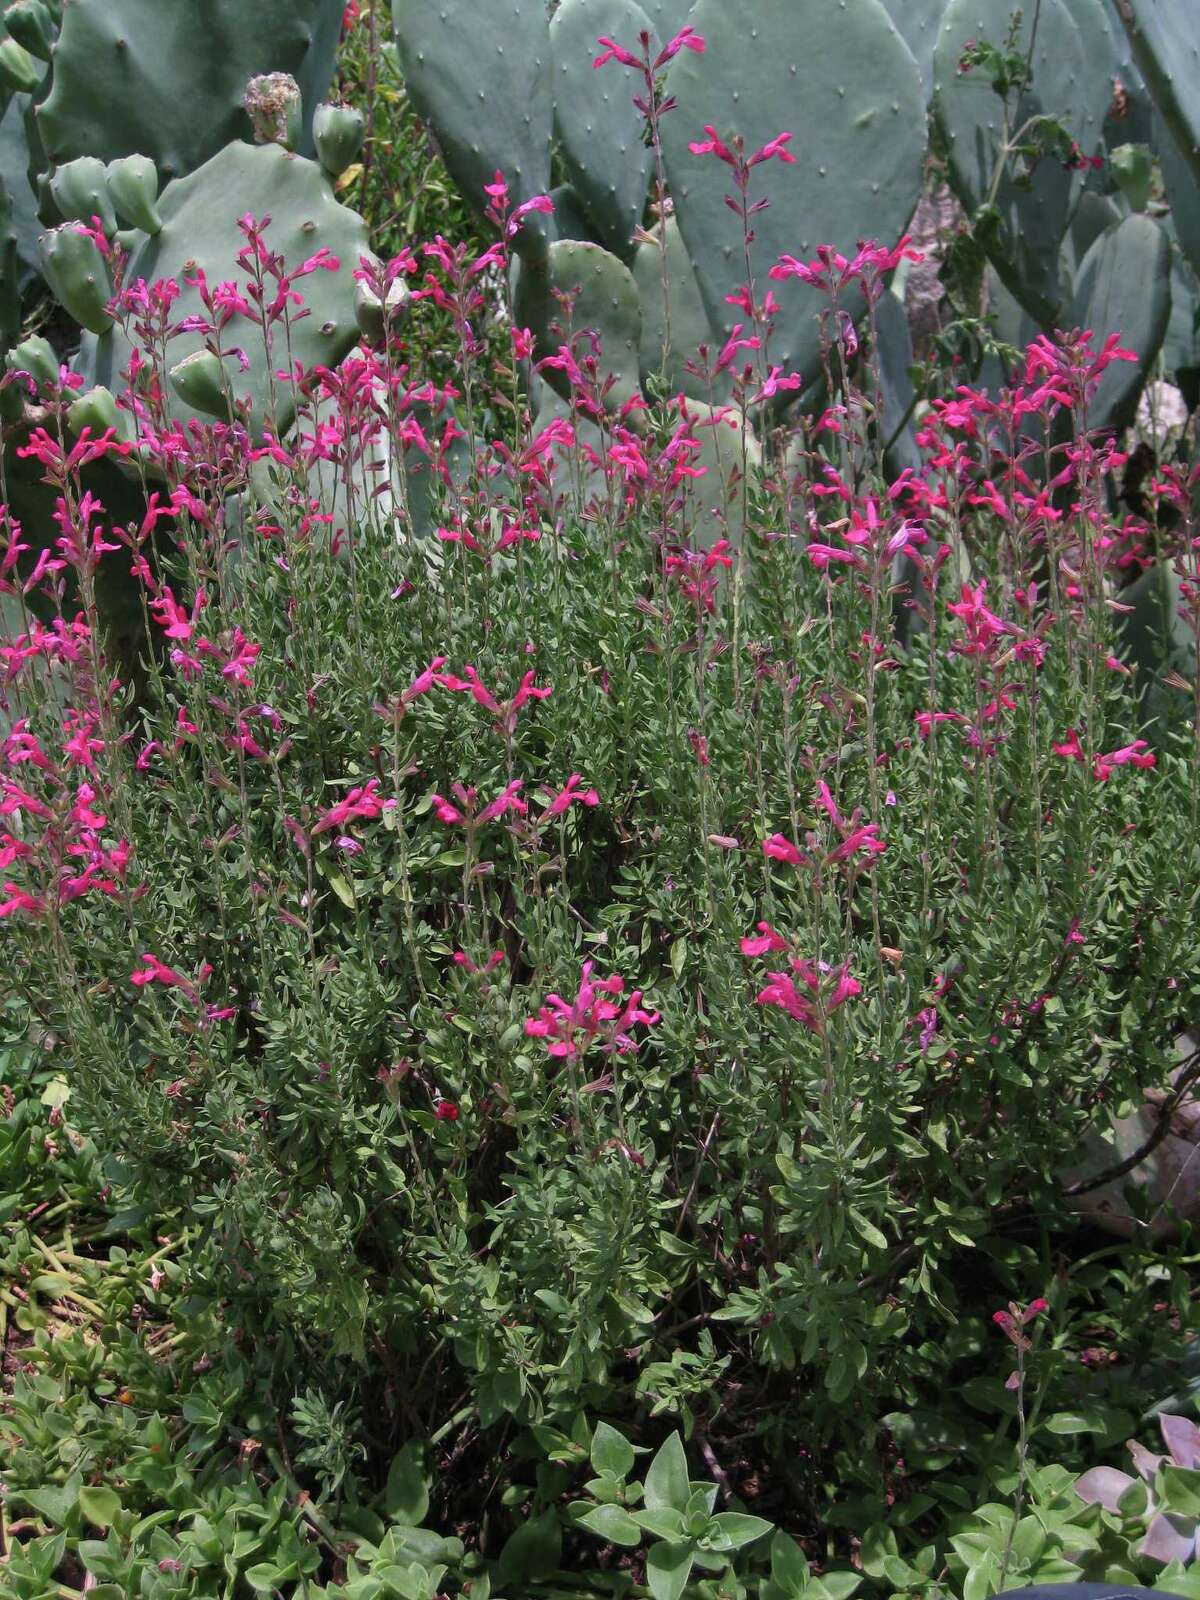 Hummingbird hotspot 5- Autumn sage (Salvia greggii) is a hummingbird favorite. With irrigation and pruning, these evergreen bushes bloom from spring through autumn. KATHLEEN SCOTT, EXPRESS-NEWS.